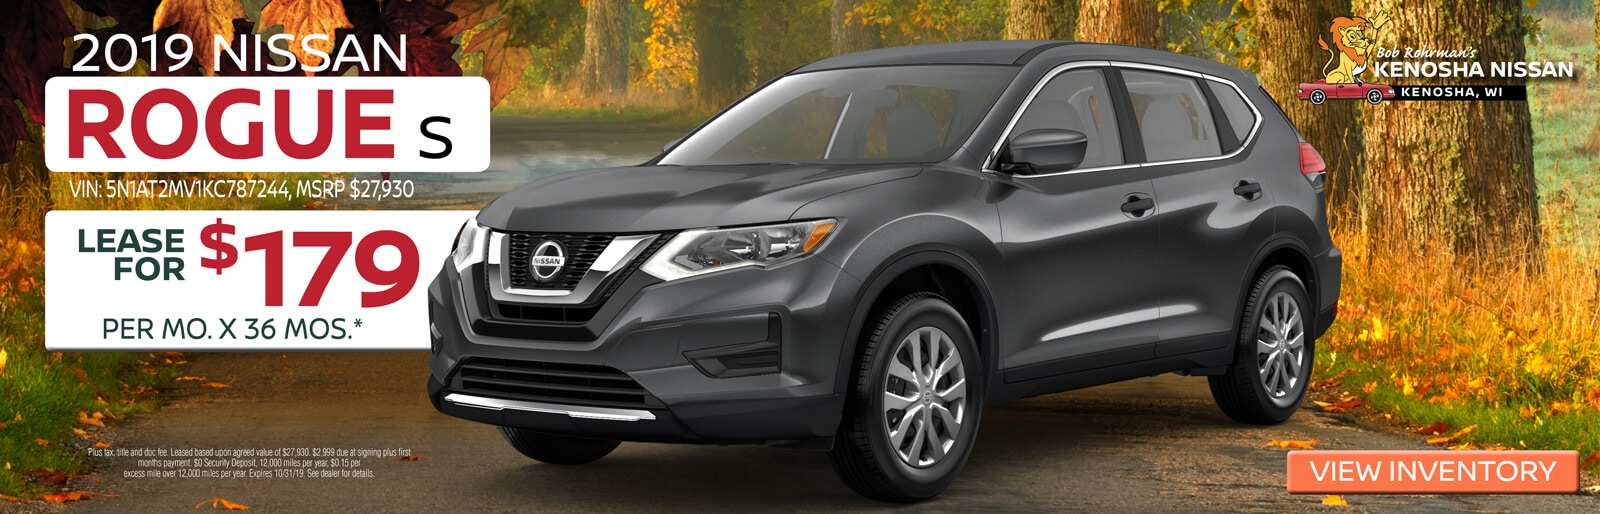 Lease a 2019 Nissan Rogue S for $179/mo. for 36mos.